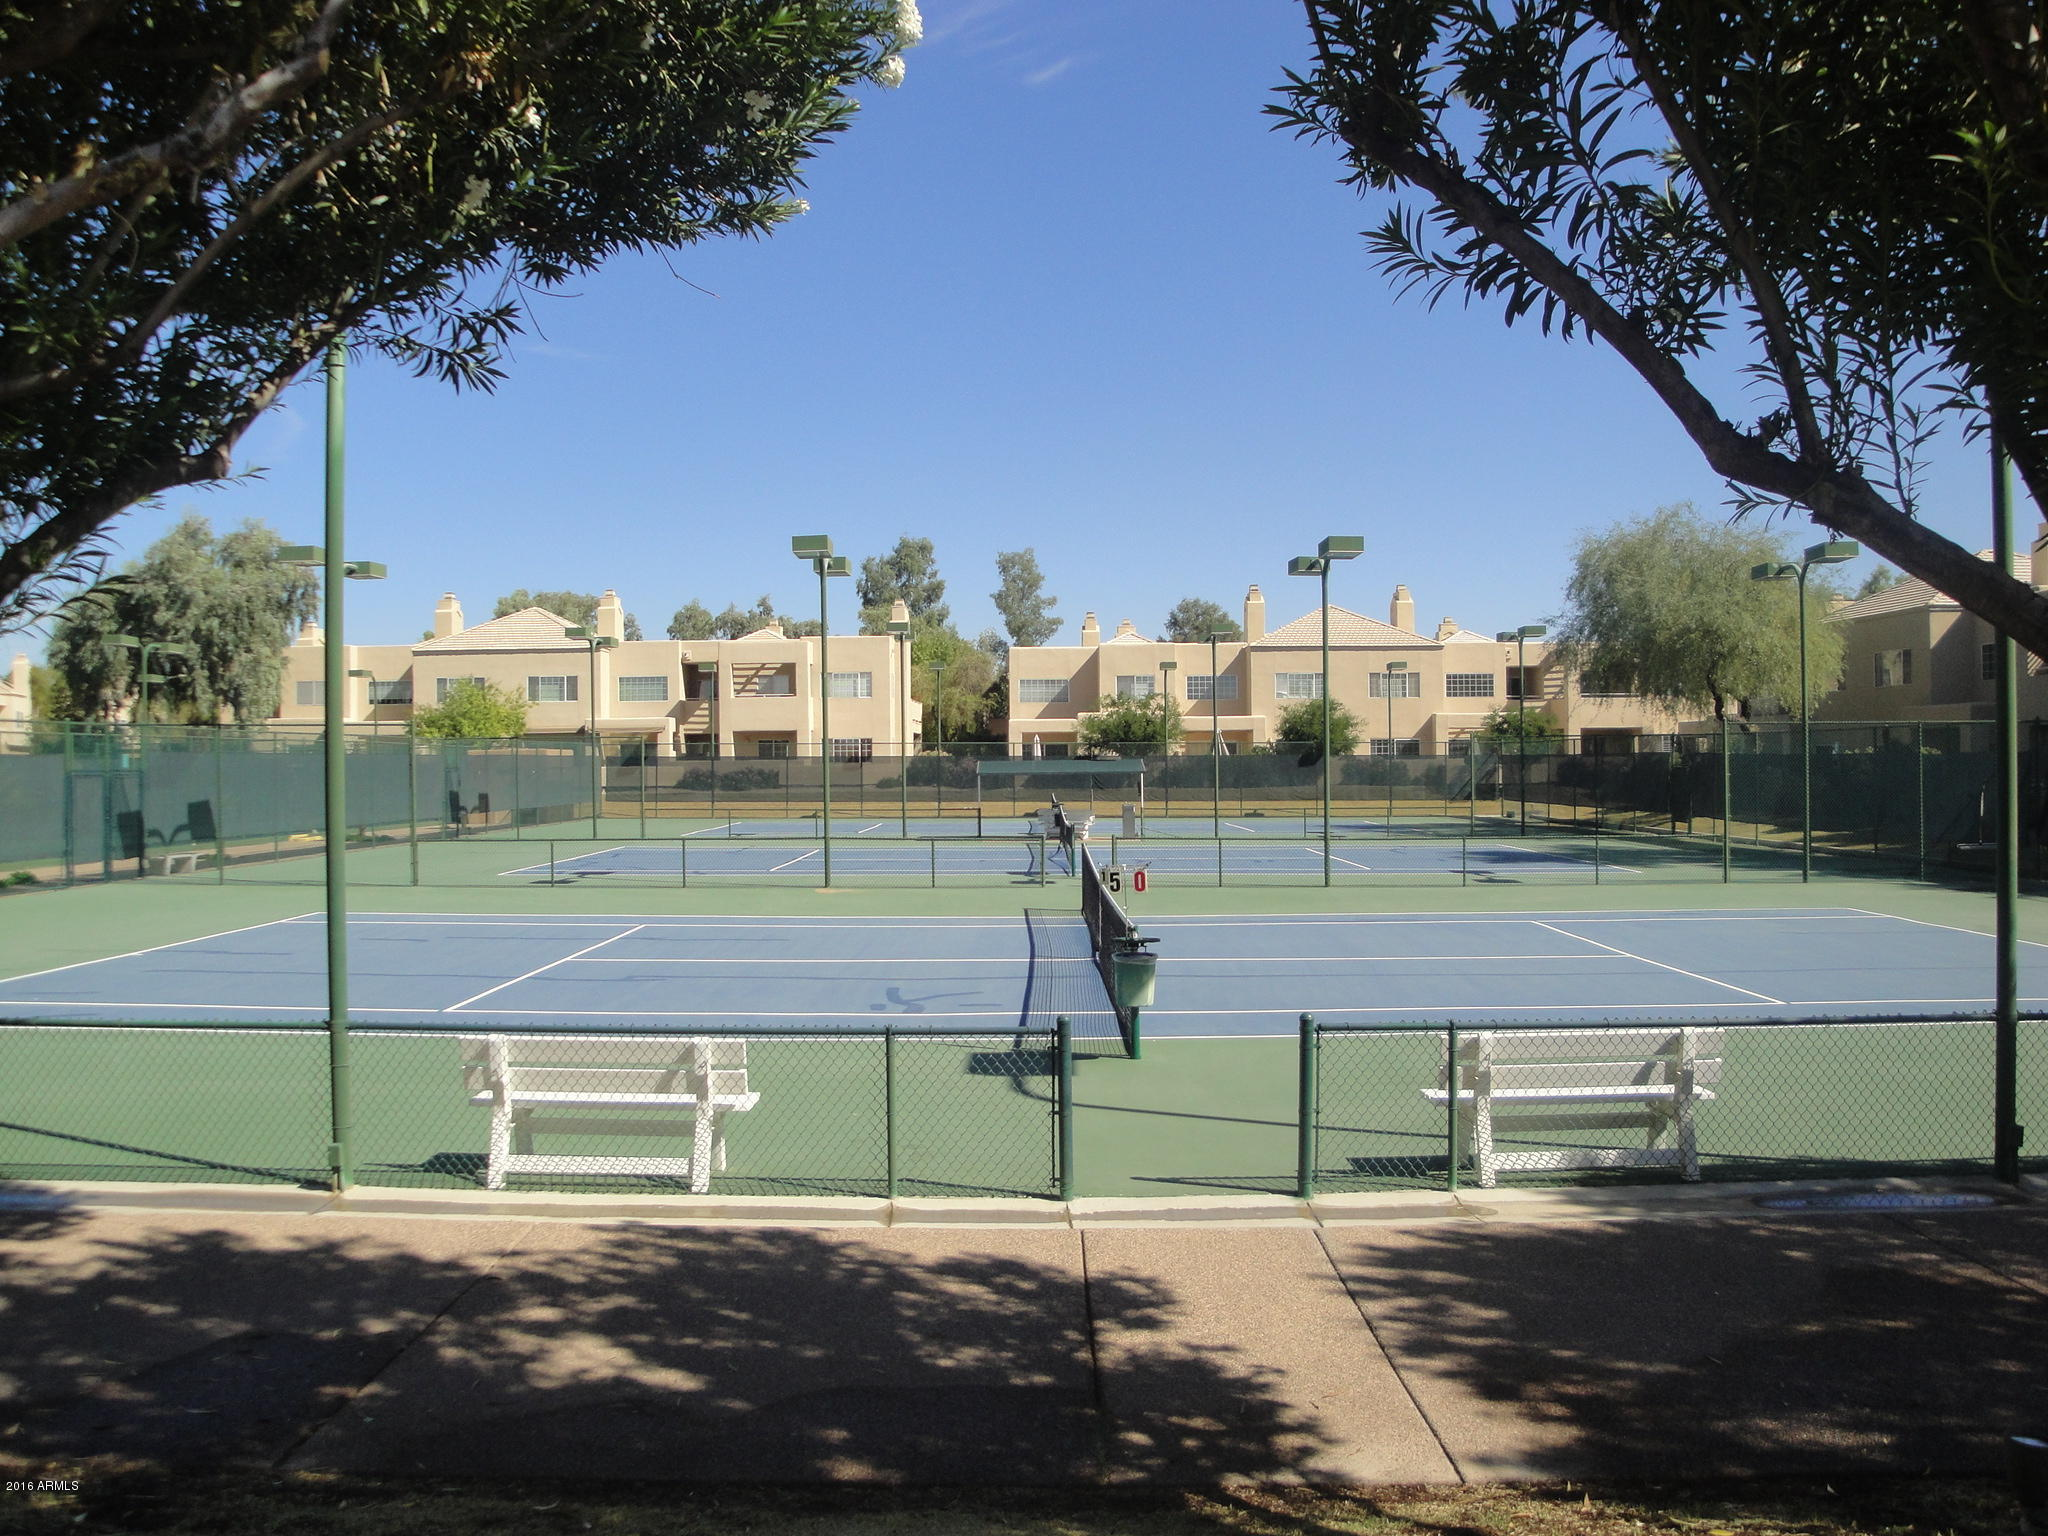 MLS 5788705 7272 E GAINEY RANCH Road Unit 99, Scottsdale, AZ 85258 Scottsdale AZ Gainey Ranch